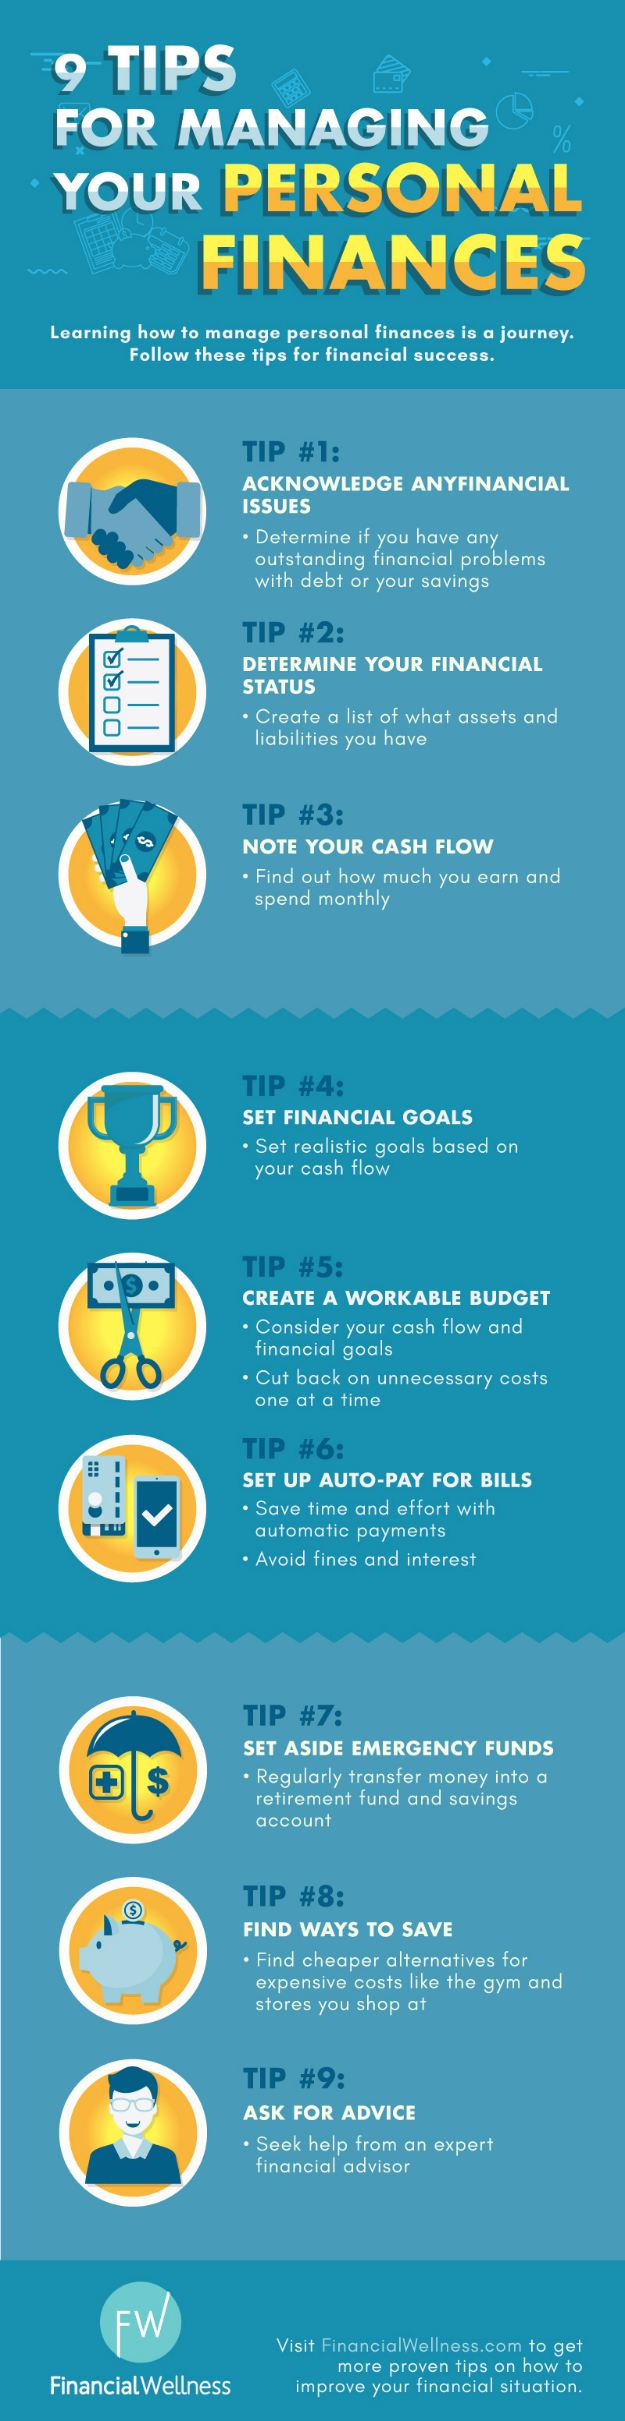 Manage Your Personal Finance in 9 Practical Ways